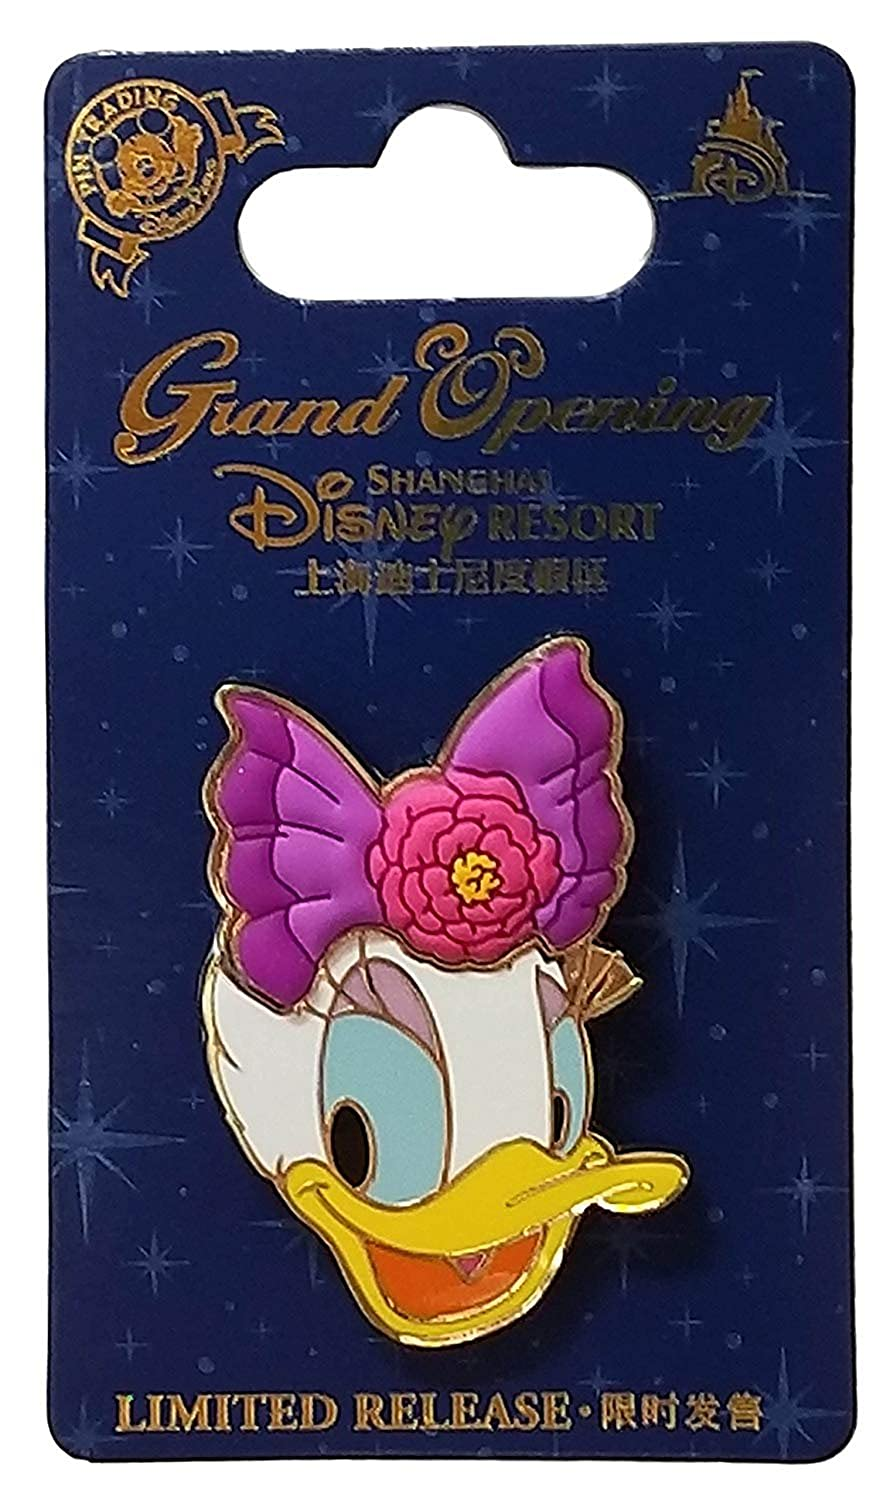 Disney Shanghai Resort Grand Opening Daisy Duck Face With Purple Bow Limited Release Pin